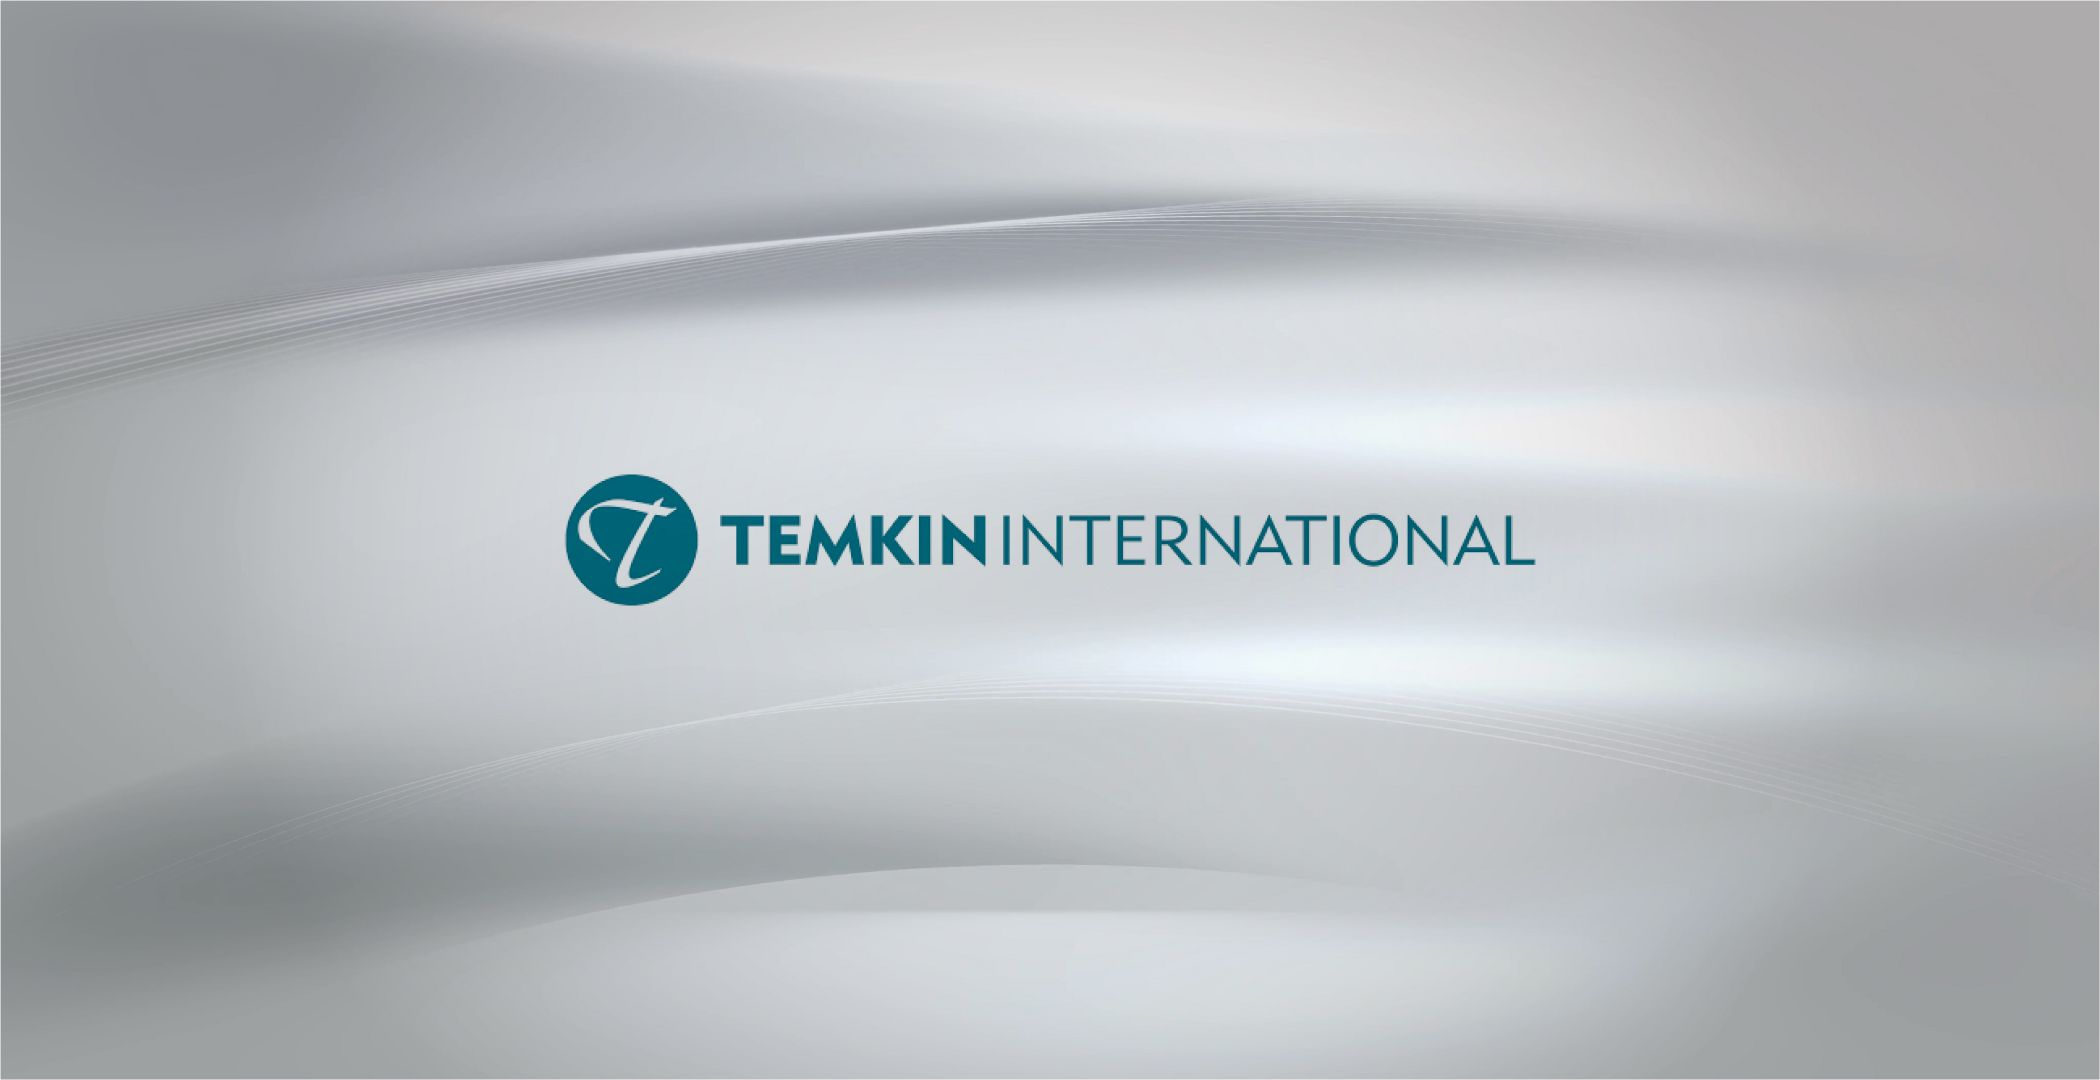 PPC Flexible Packaging acquires Temkin International